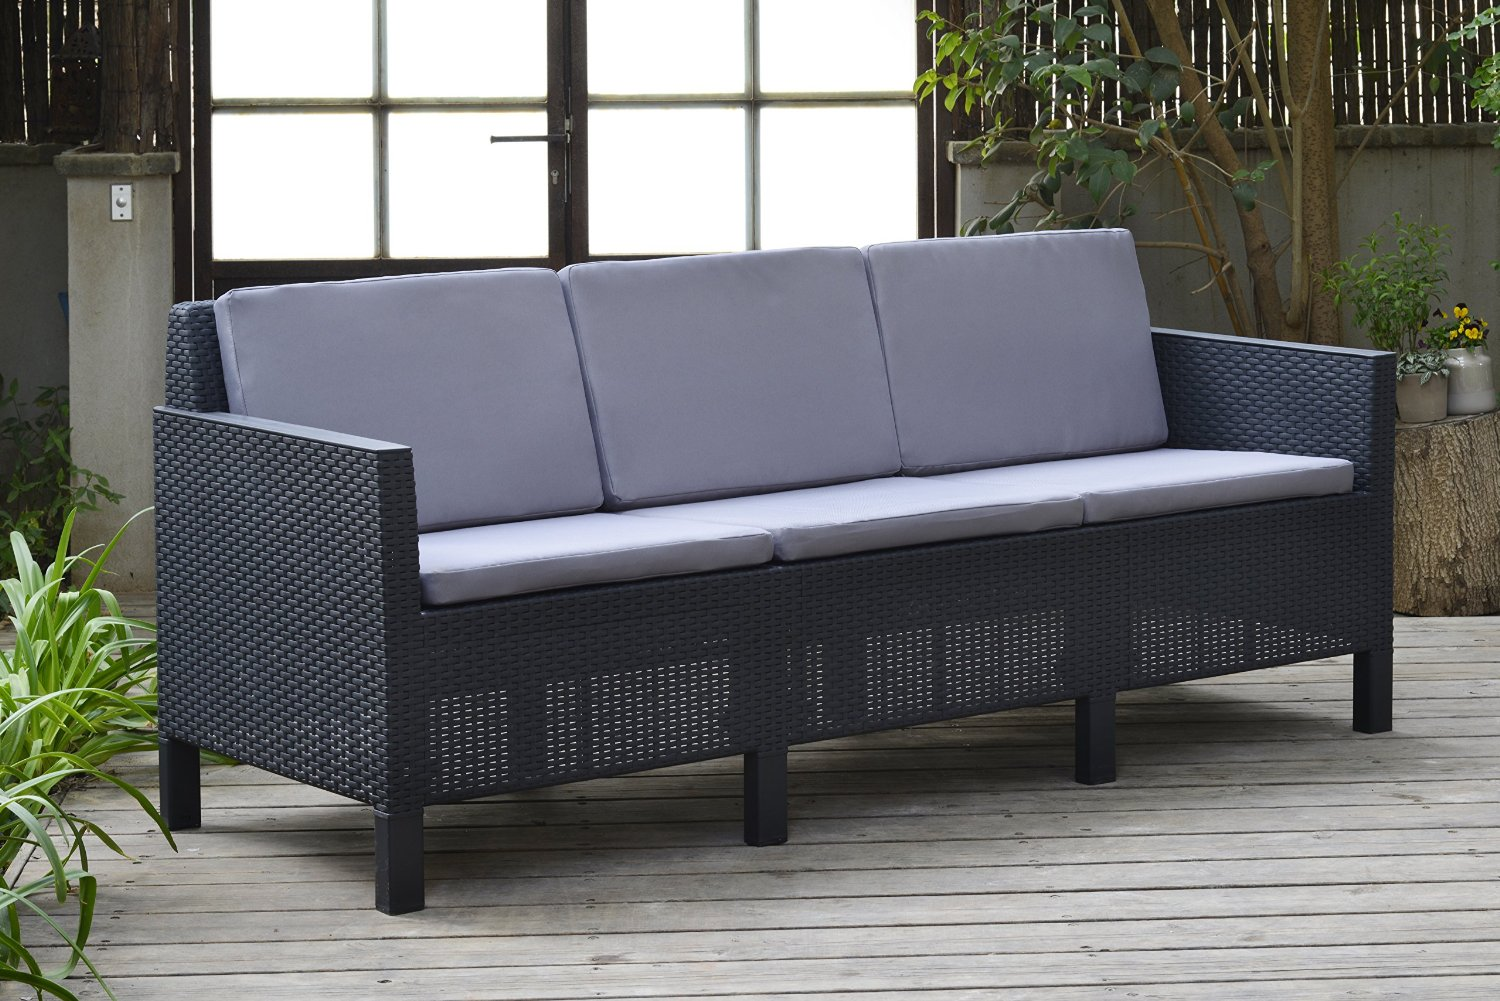 allibert chicago 5 seater lounge set with grey cushions. Black Bedroom Furniture Sets. Home Design Ideas